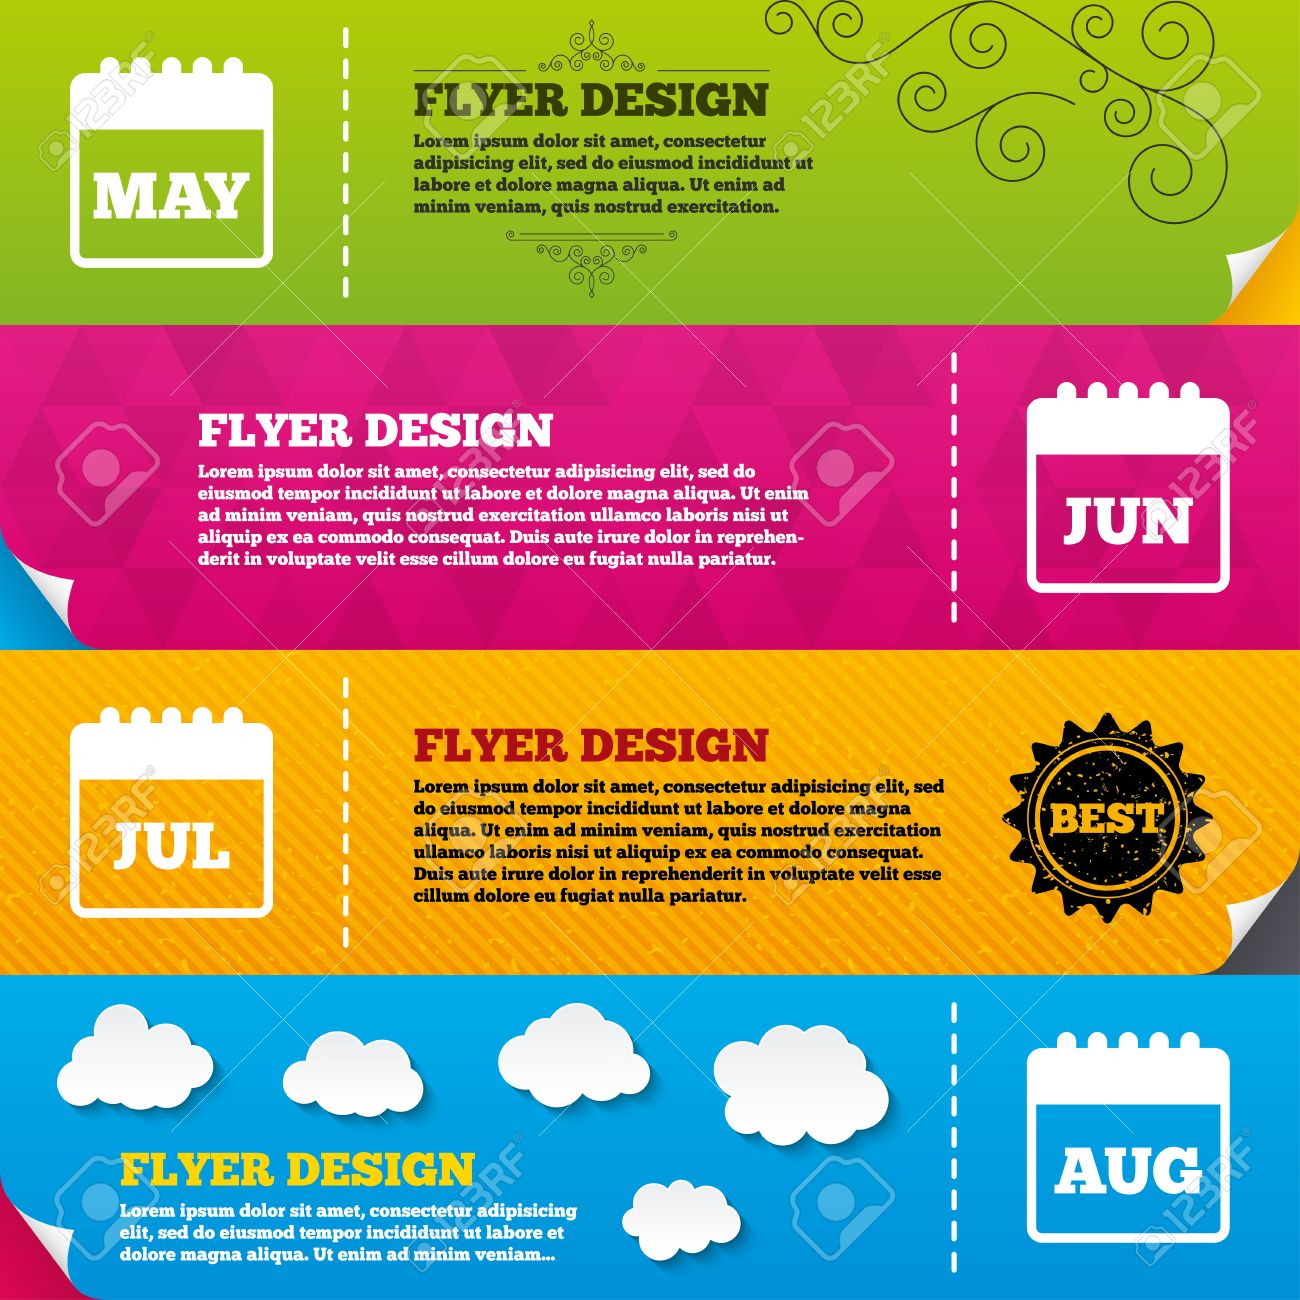 Flyer brochure designs calendar icons may june july and august flyer brochure designs calendar icons may june july and august month symbols buycottarizona Image collections